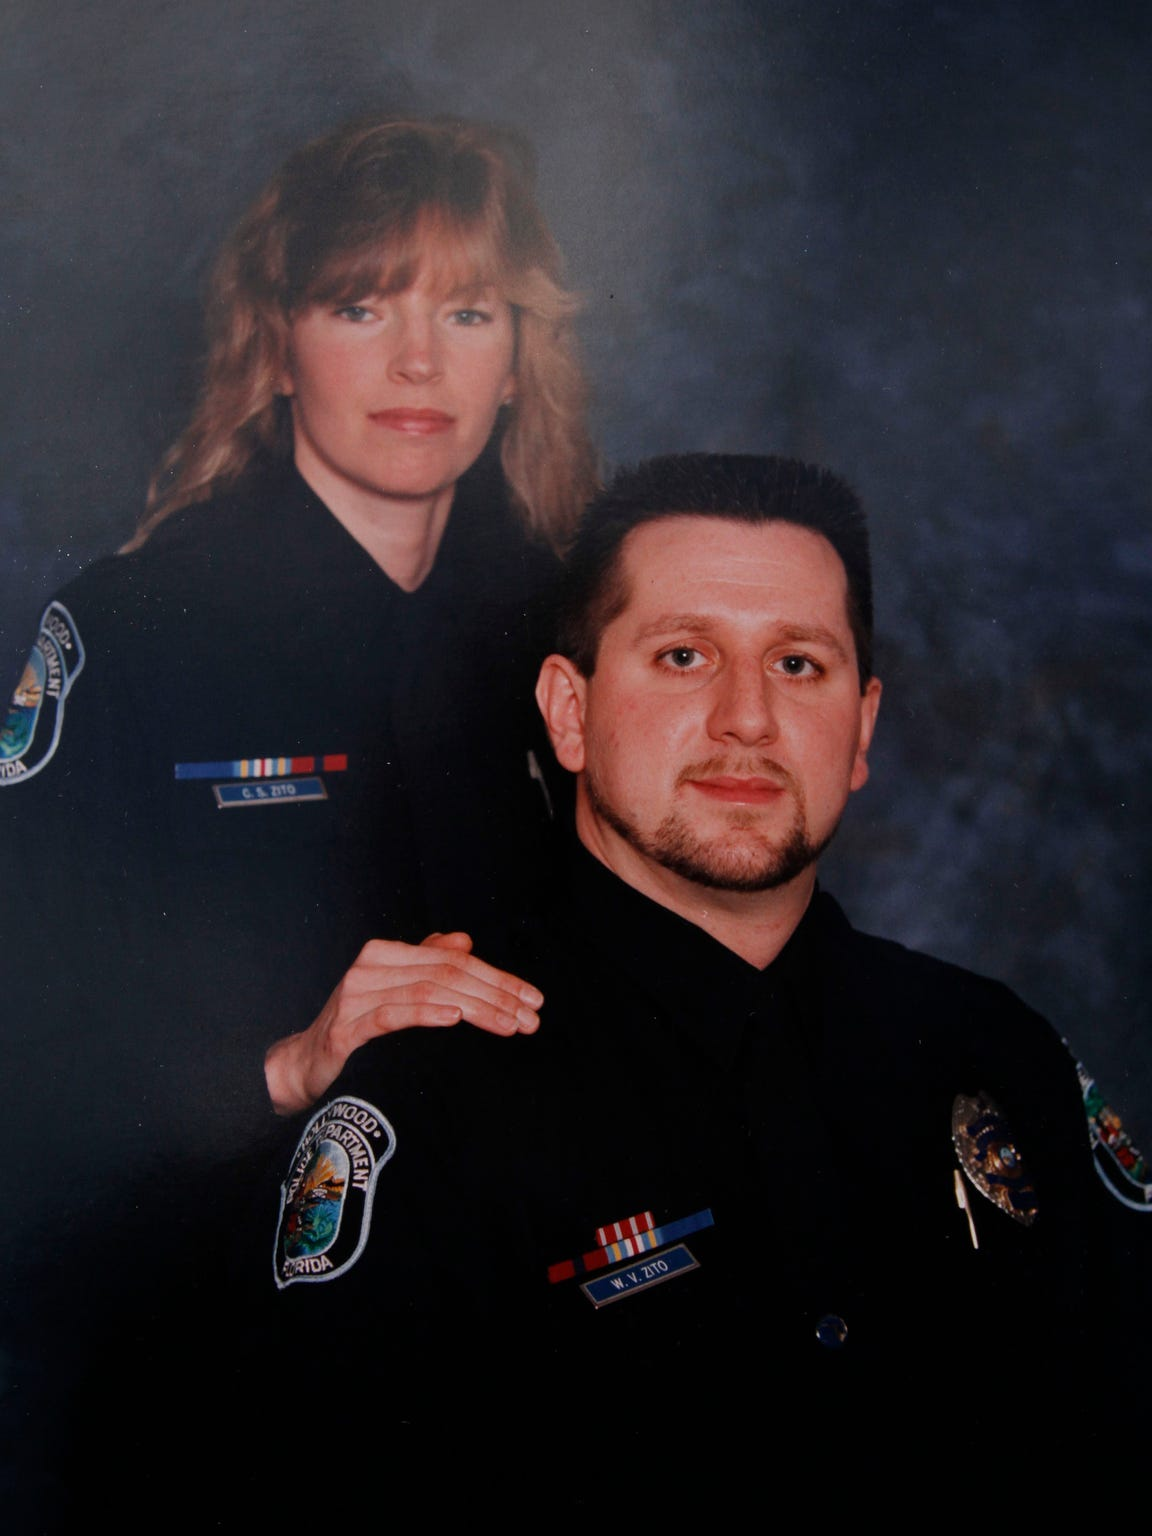 Bill Zito and Carol Stiers Zito met on the police force